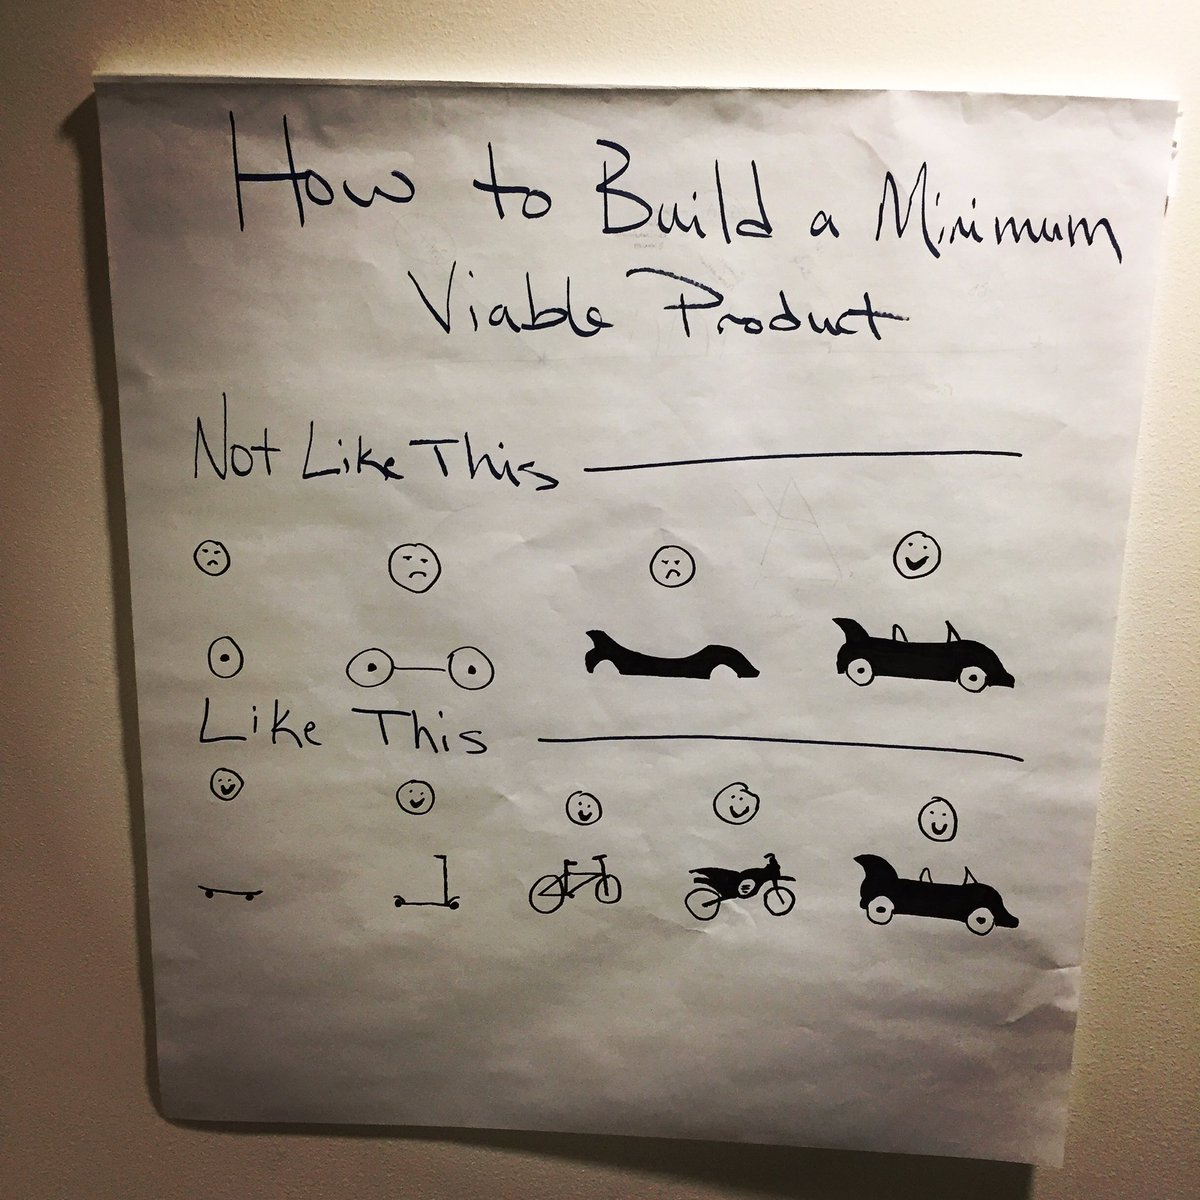 How to build a Minimal Viable Product. #bunkerbuilds #leanstartup https://t.co/5b4uisD3zv